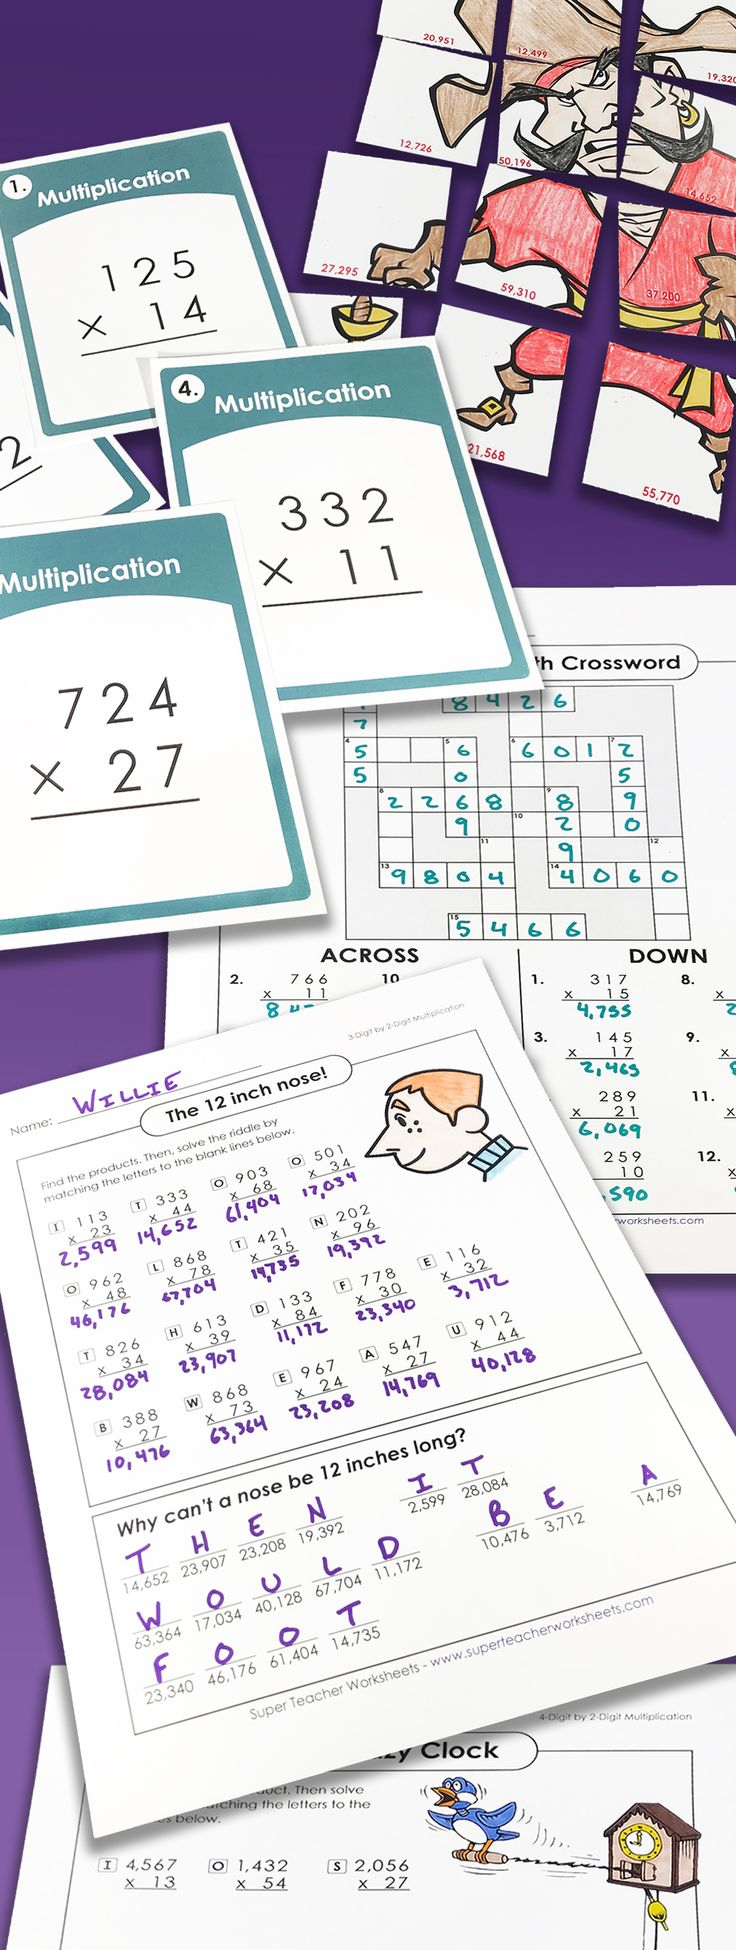 Check out the SuperTeacherWorksheets collection of